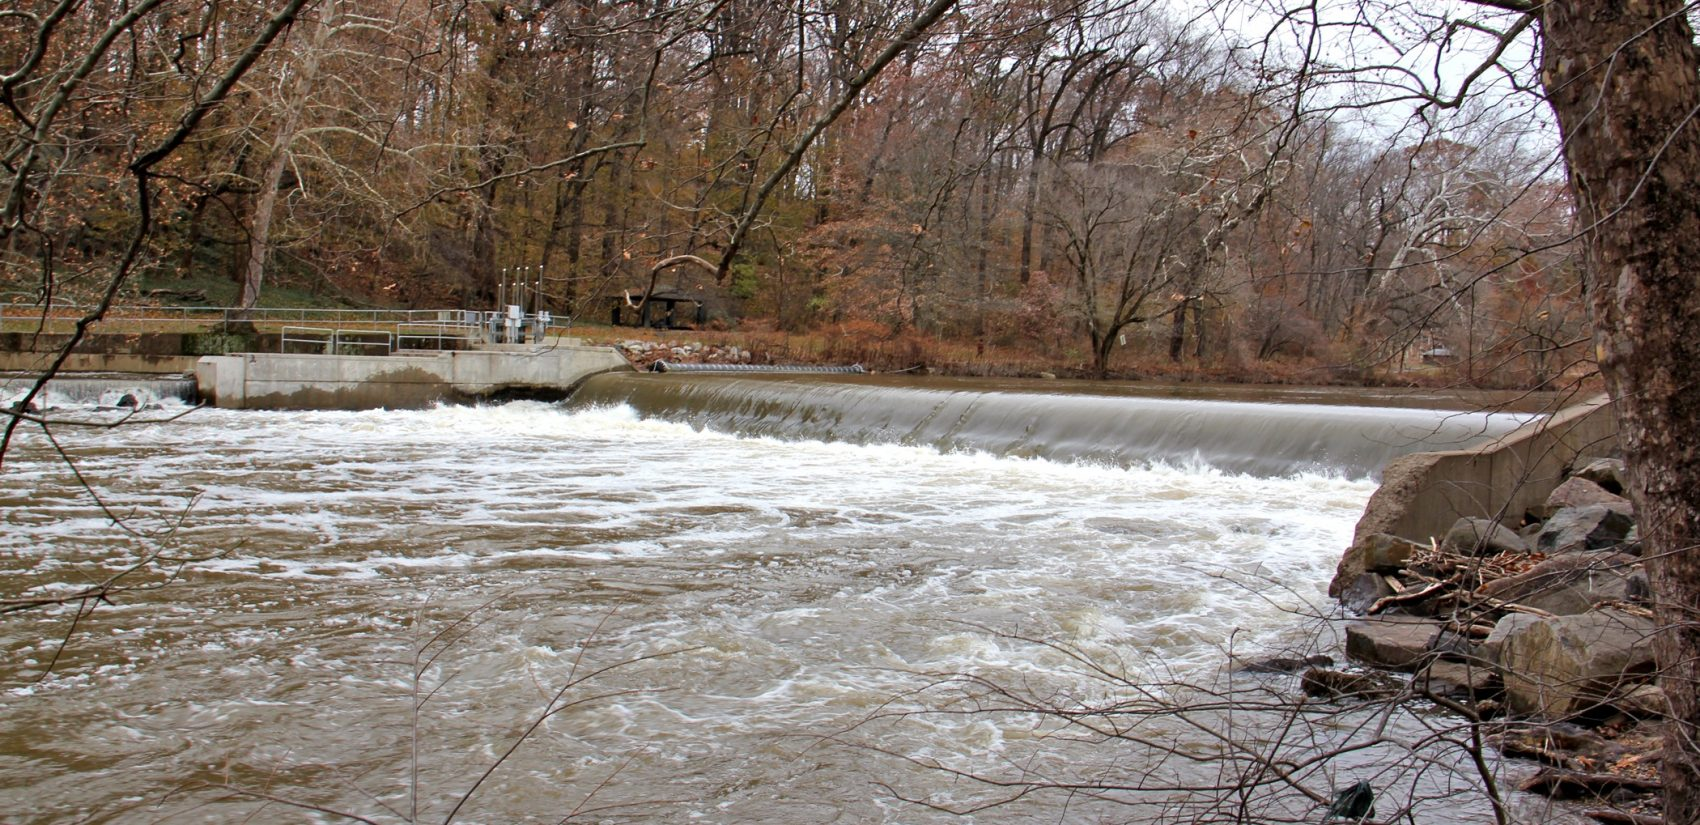 The Brandywine Creek in Wilmington, Delaware, shown here, is a tributary of the Christina River, which feeds into the Delaware River. Rising temperatures due to climate change could put the wildlife and aquatic life it supports at risk. (Emma Lee/WHYY)